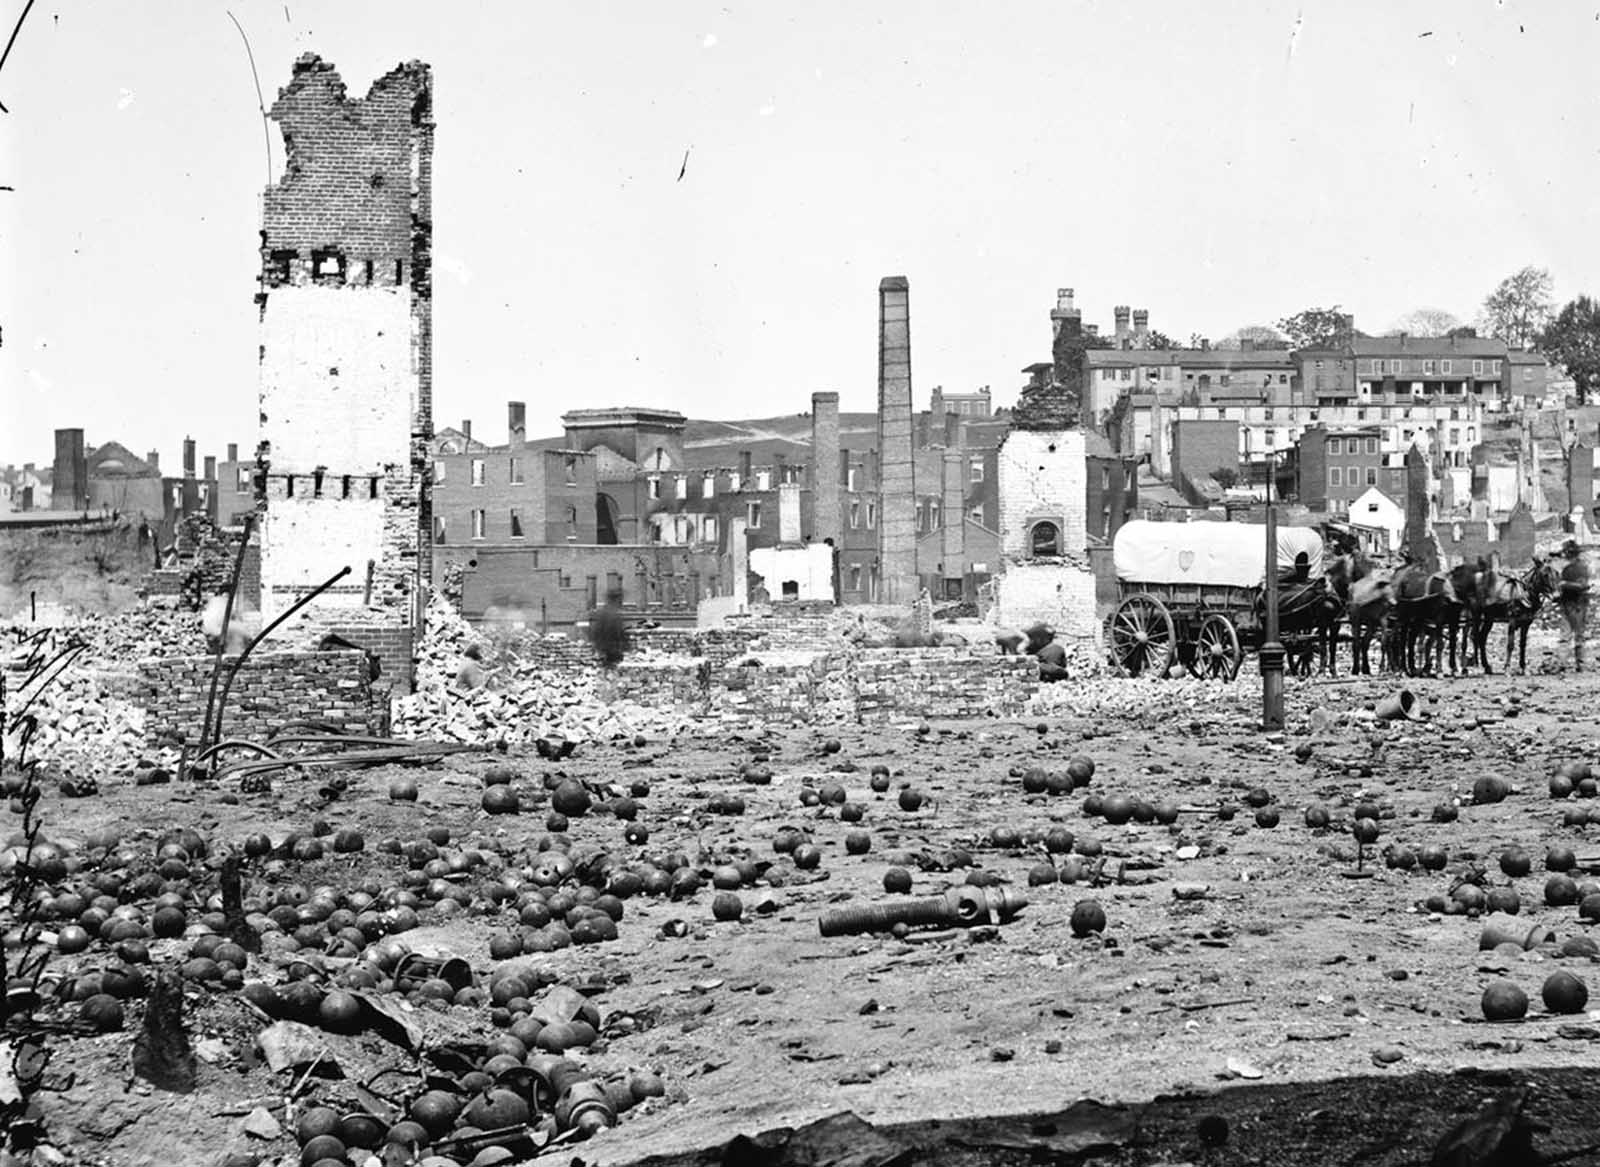 Grounds of the destroyed Arsenal with scattered shot and shell in Richmond, Virginia, in 1865.